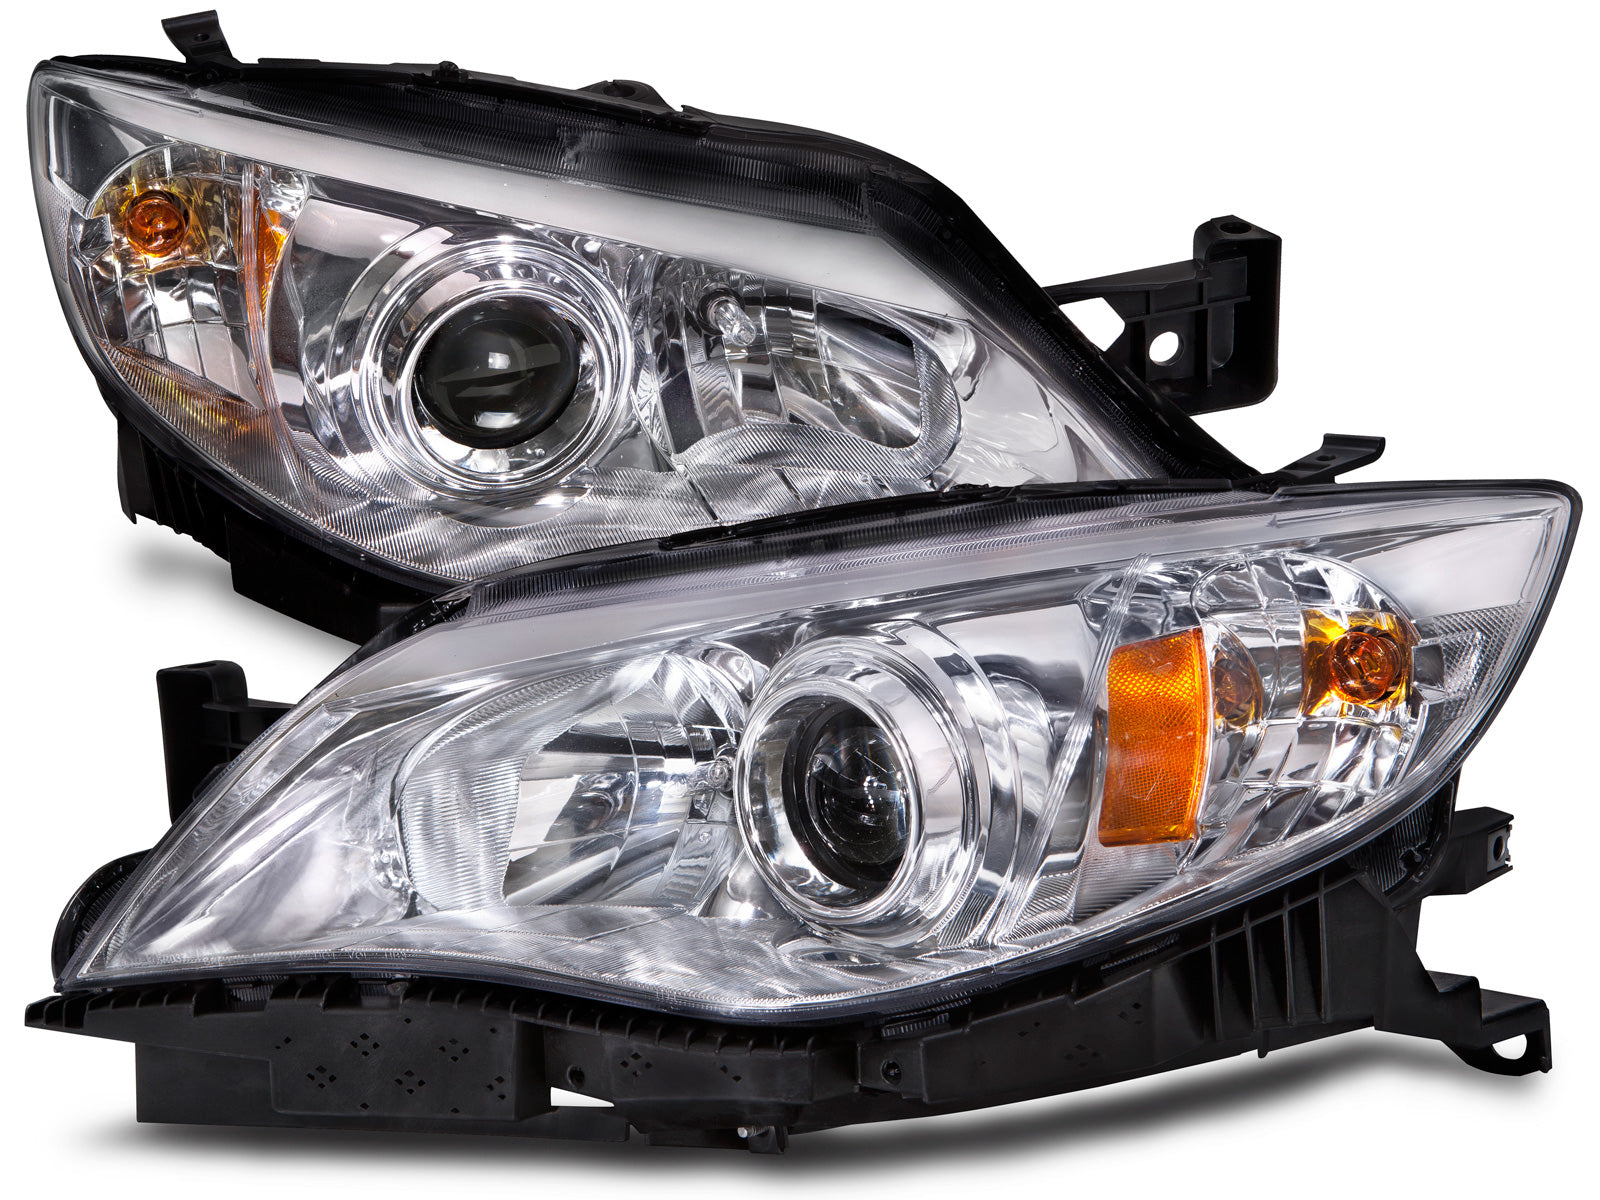 Chrome Headlight Set Fits 08-11 Subaru Impreza/ Outback Sport/ WRX Models